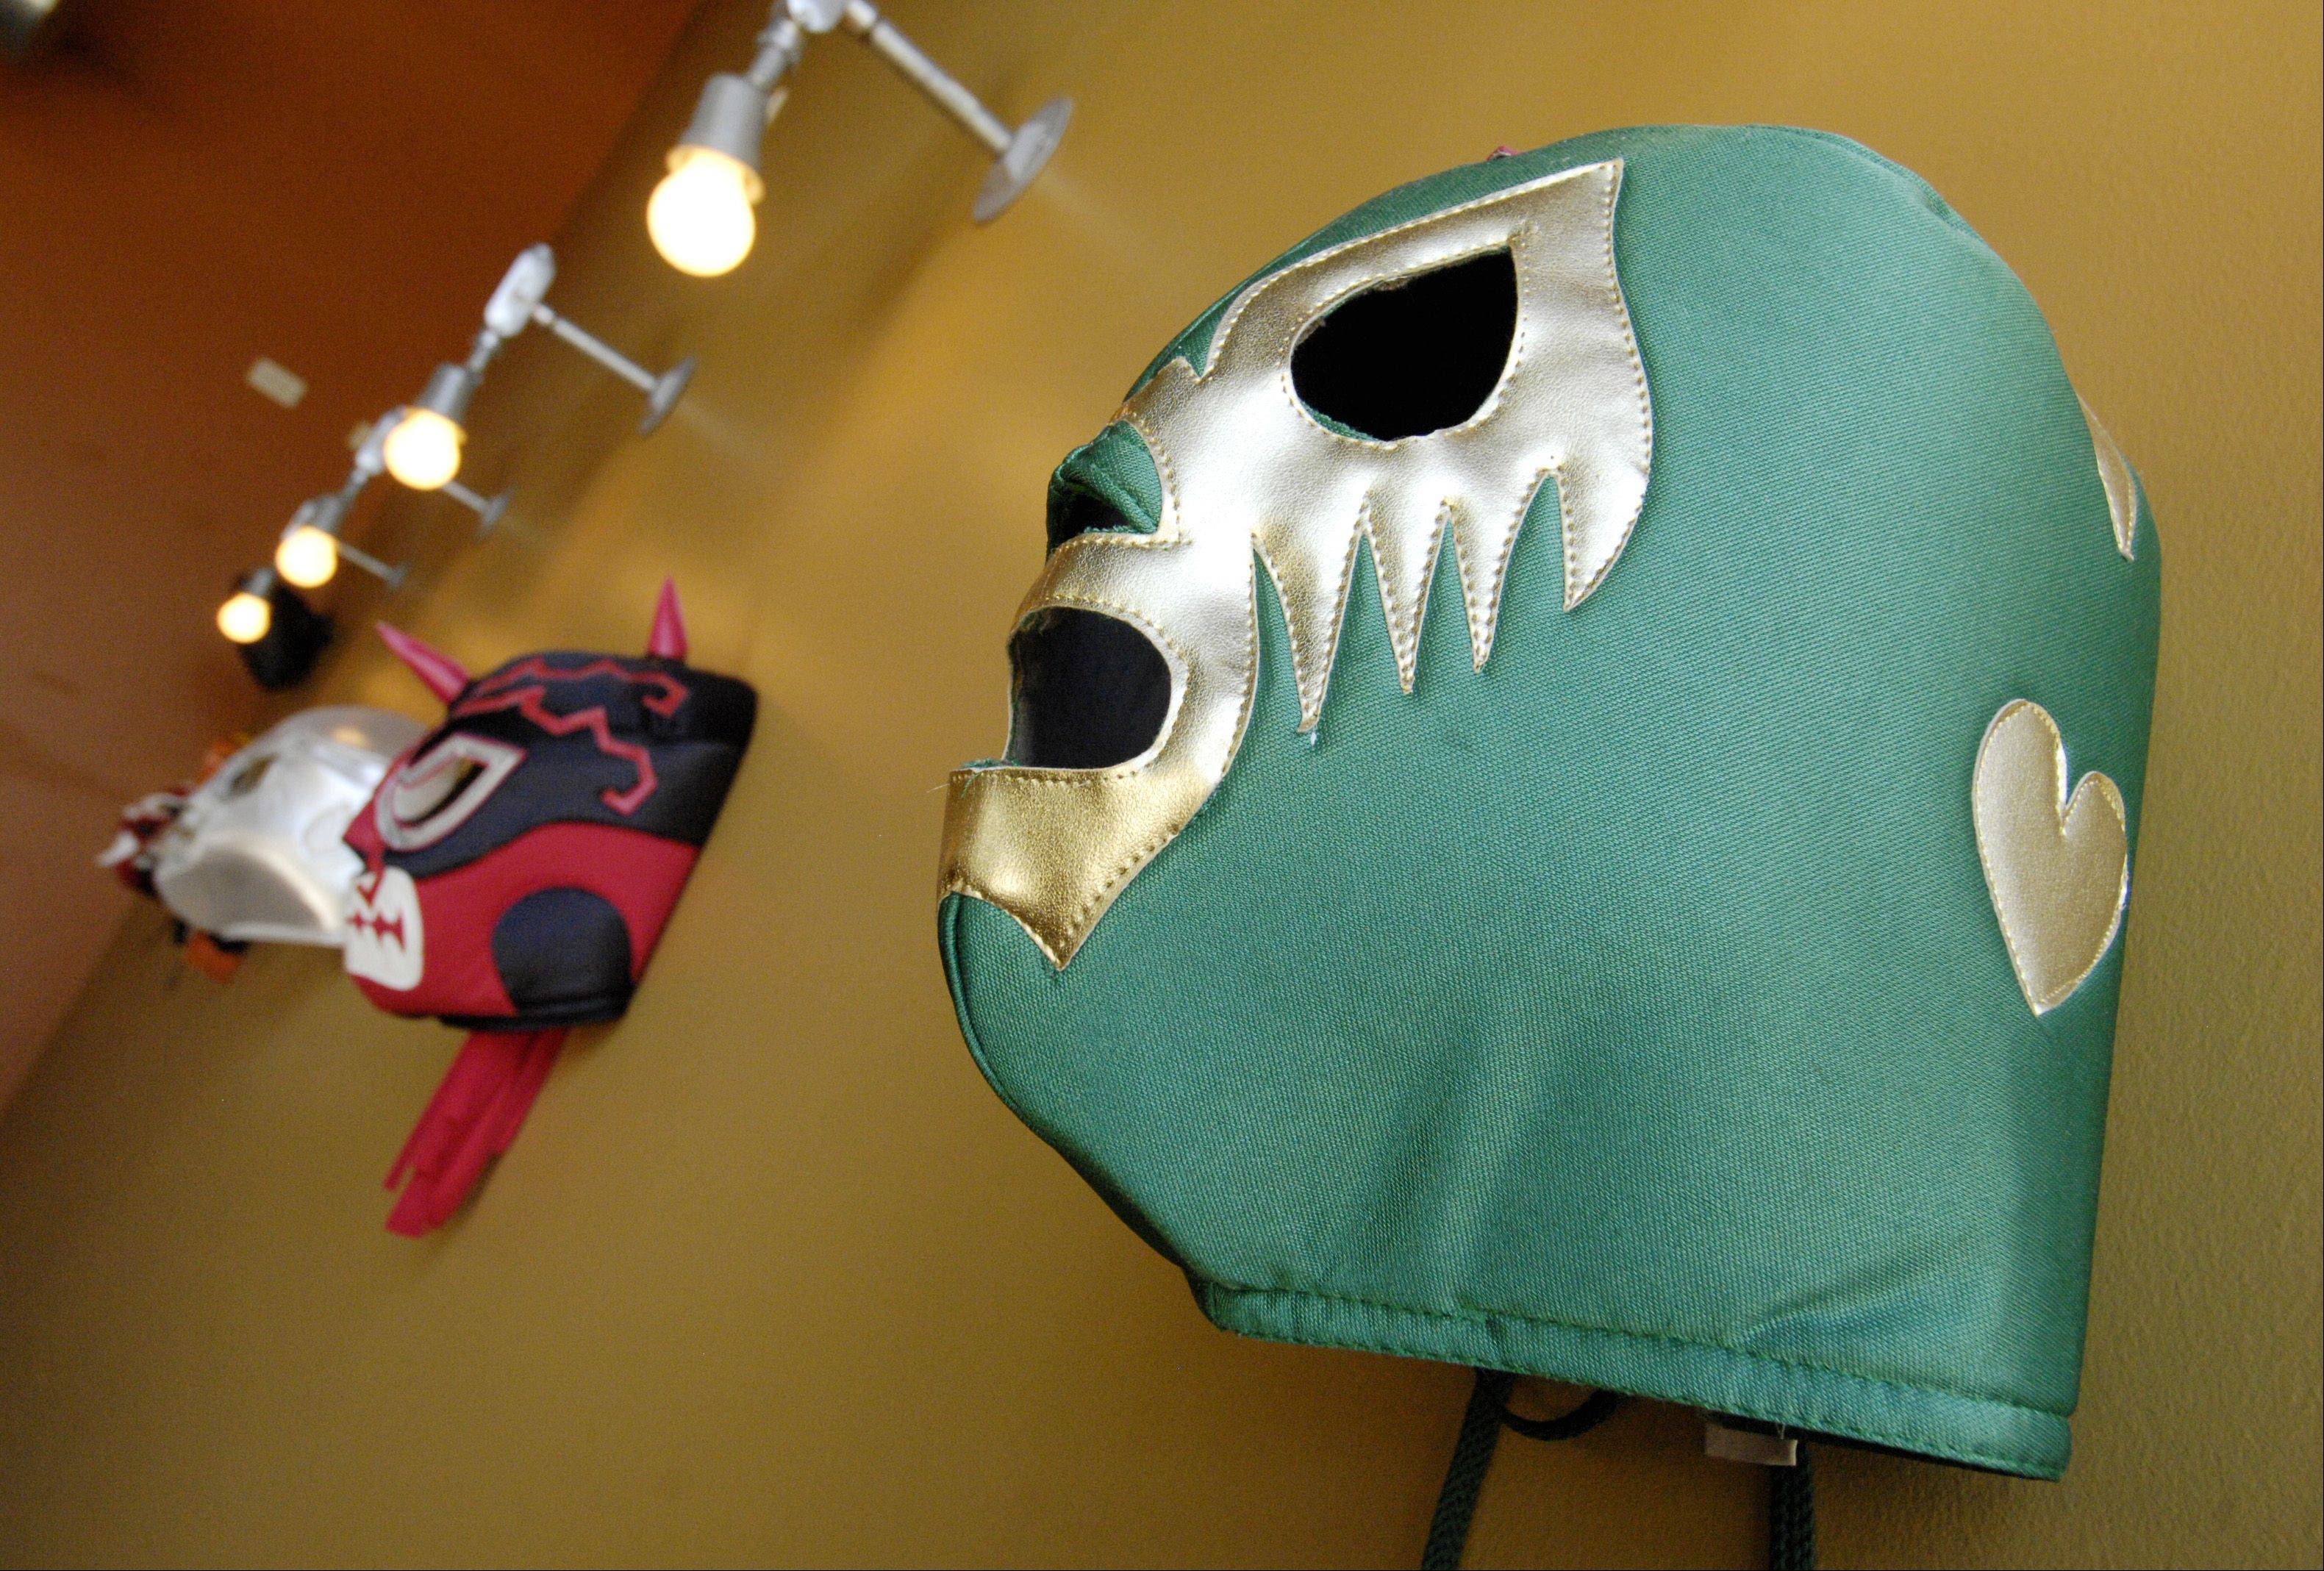 Mexican wrestling masks welcome diners to Changarro in West Chicago.